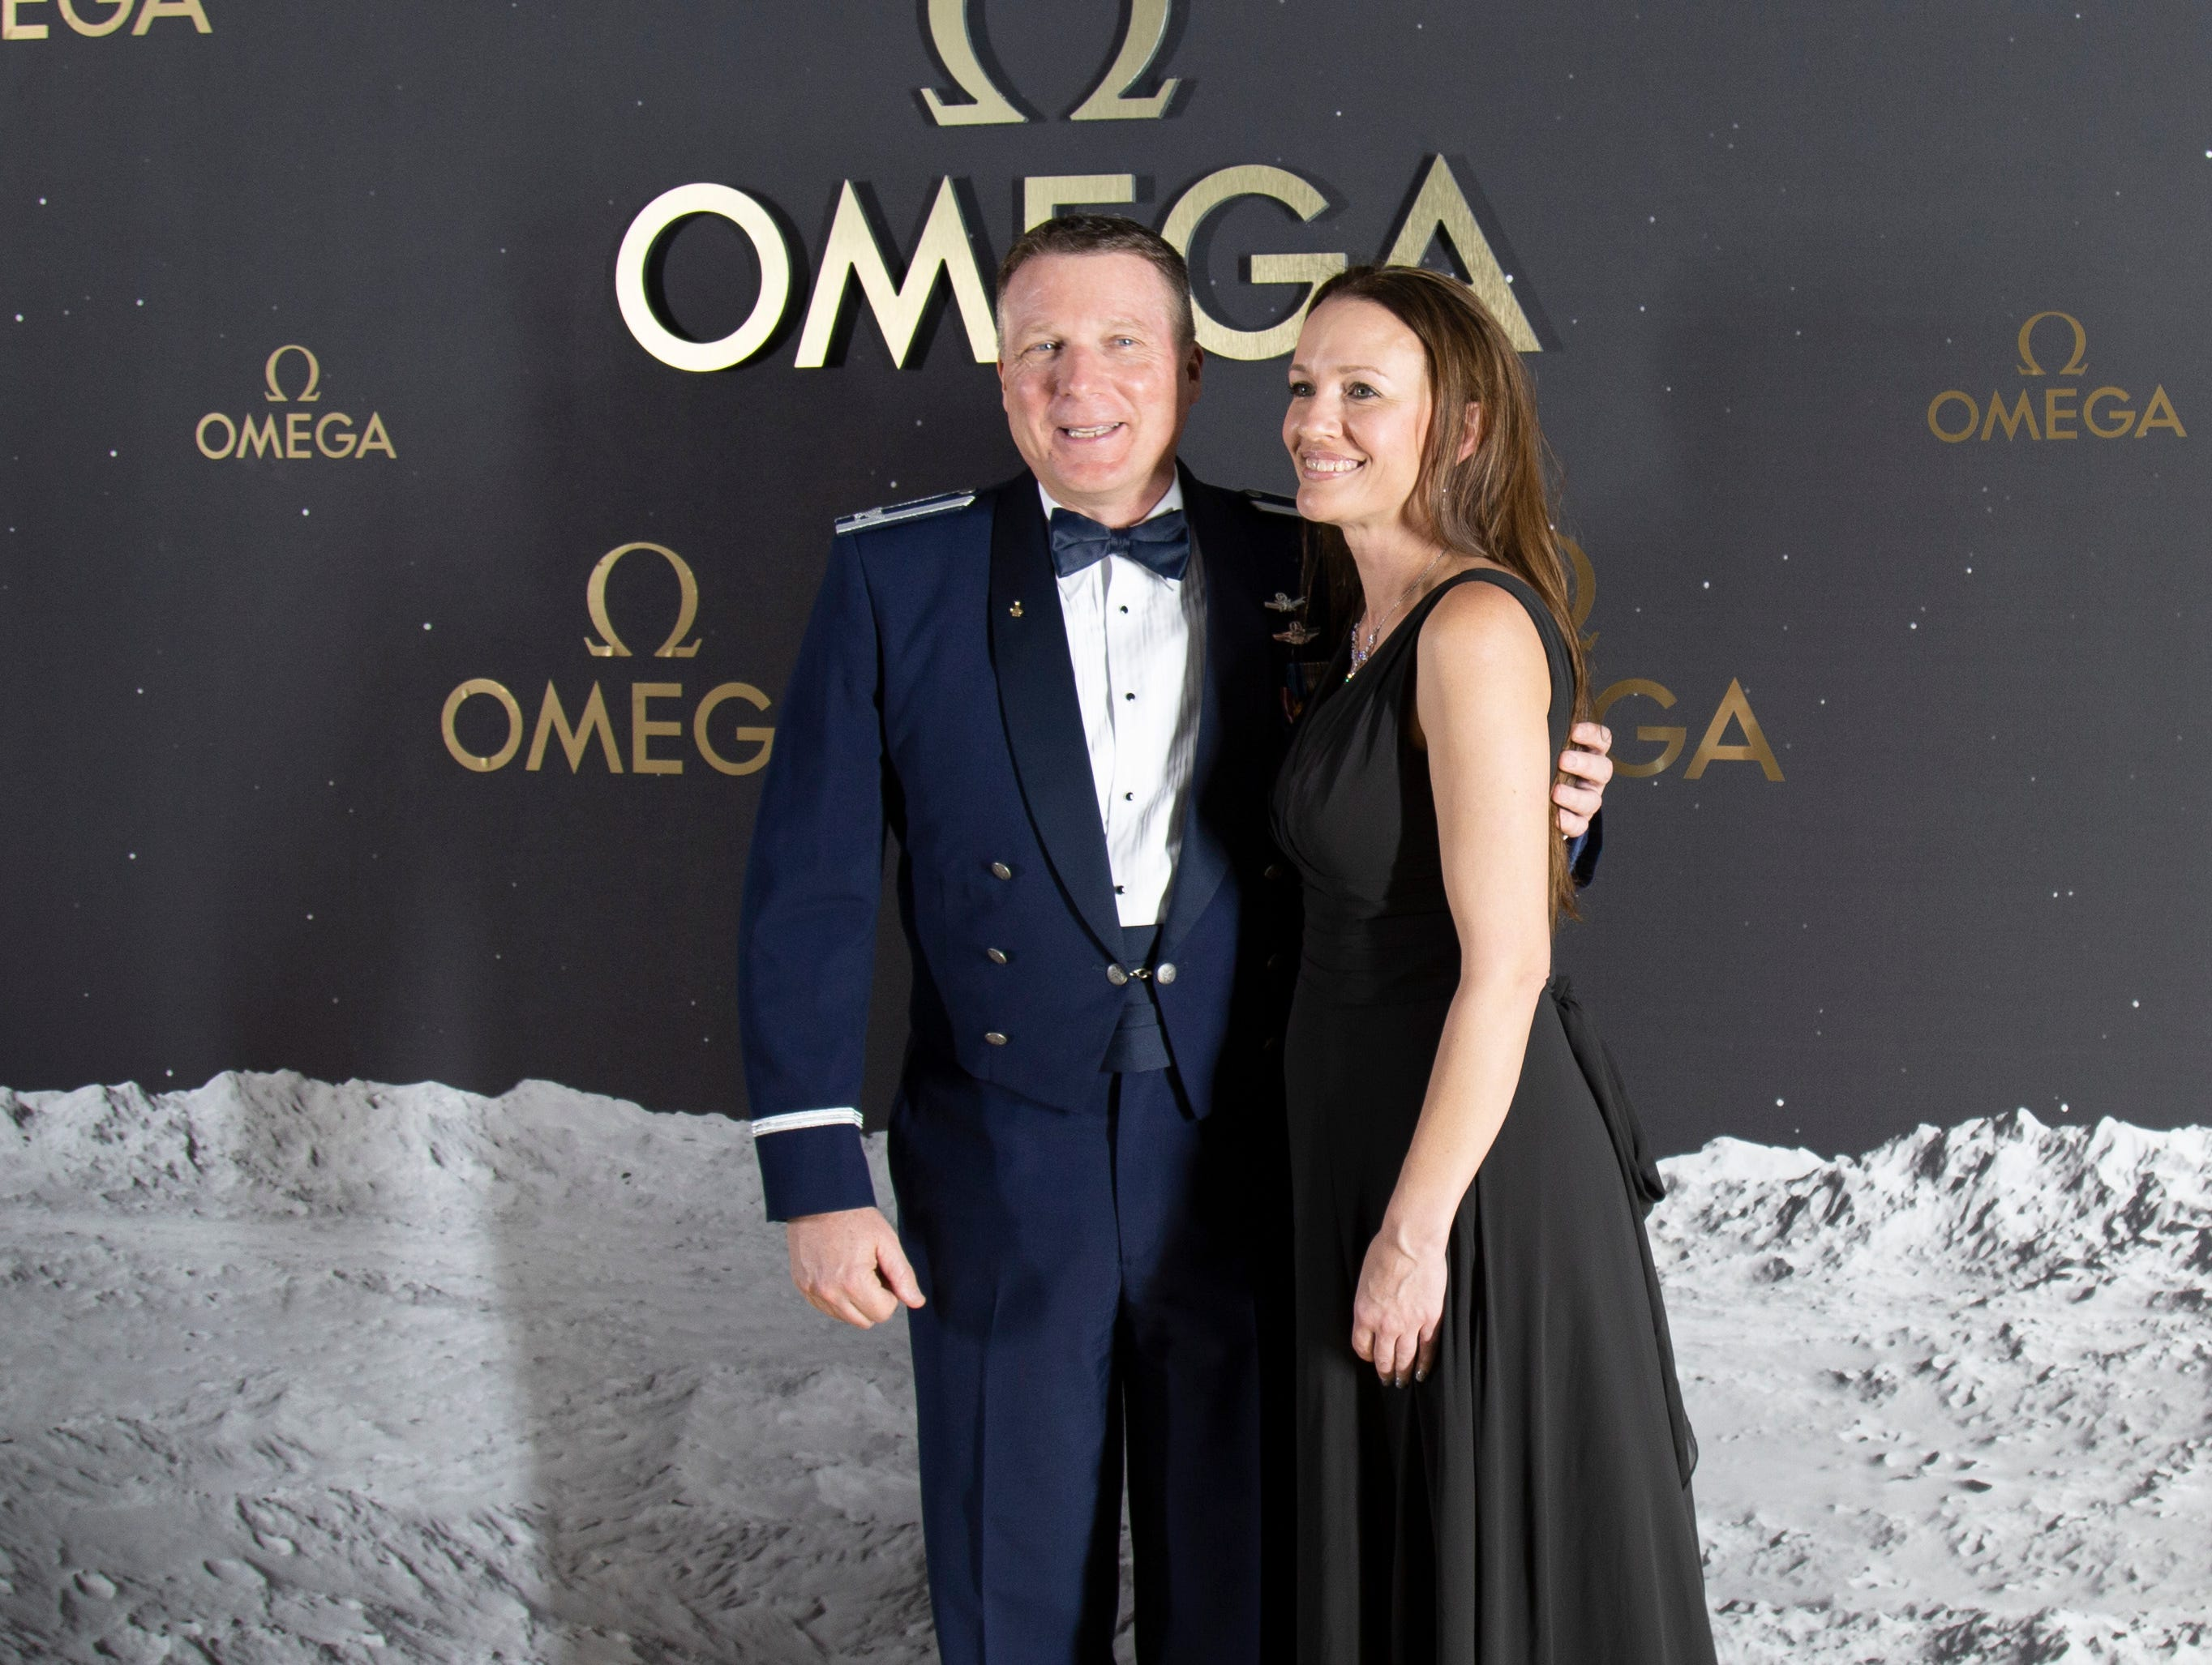 The Swiss watch brand Omega, which accompanied Apollo 11 astronaut Buzz Aldrin when he walked on the moon's surface nearly 50 years ago, hosted an event honoring the 50th anniversary of the moon landing at the Apollo/Saturn V Center at the Kennedy Space Center. Those who attended the black-tie dinner included actor George Clooney and Amal Clooney, as well as former astronauts Thomas Stafford and Charles Moss Duke.